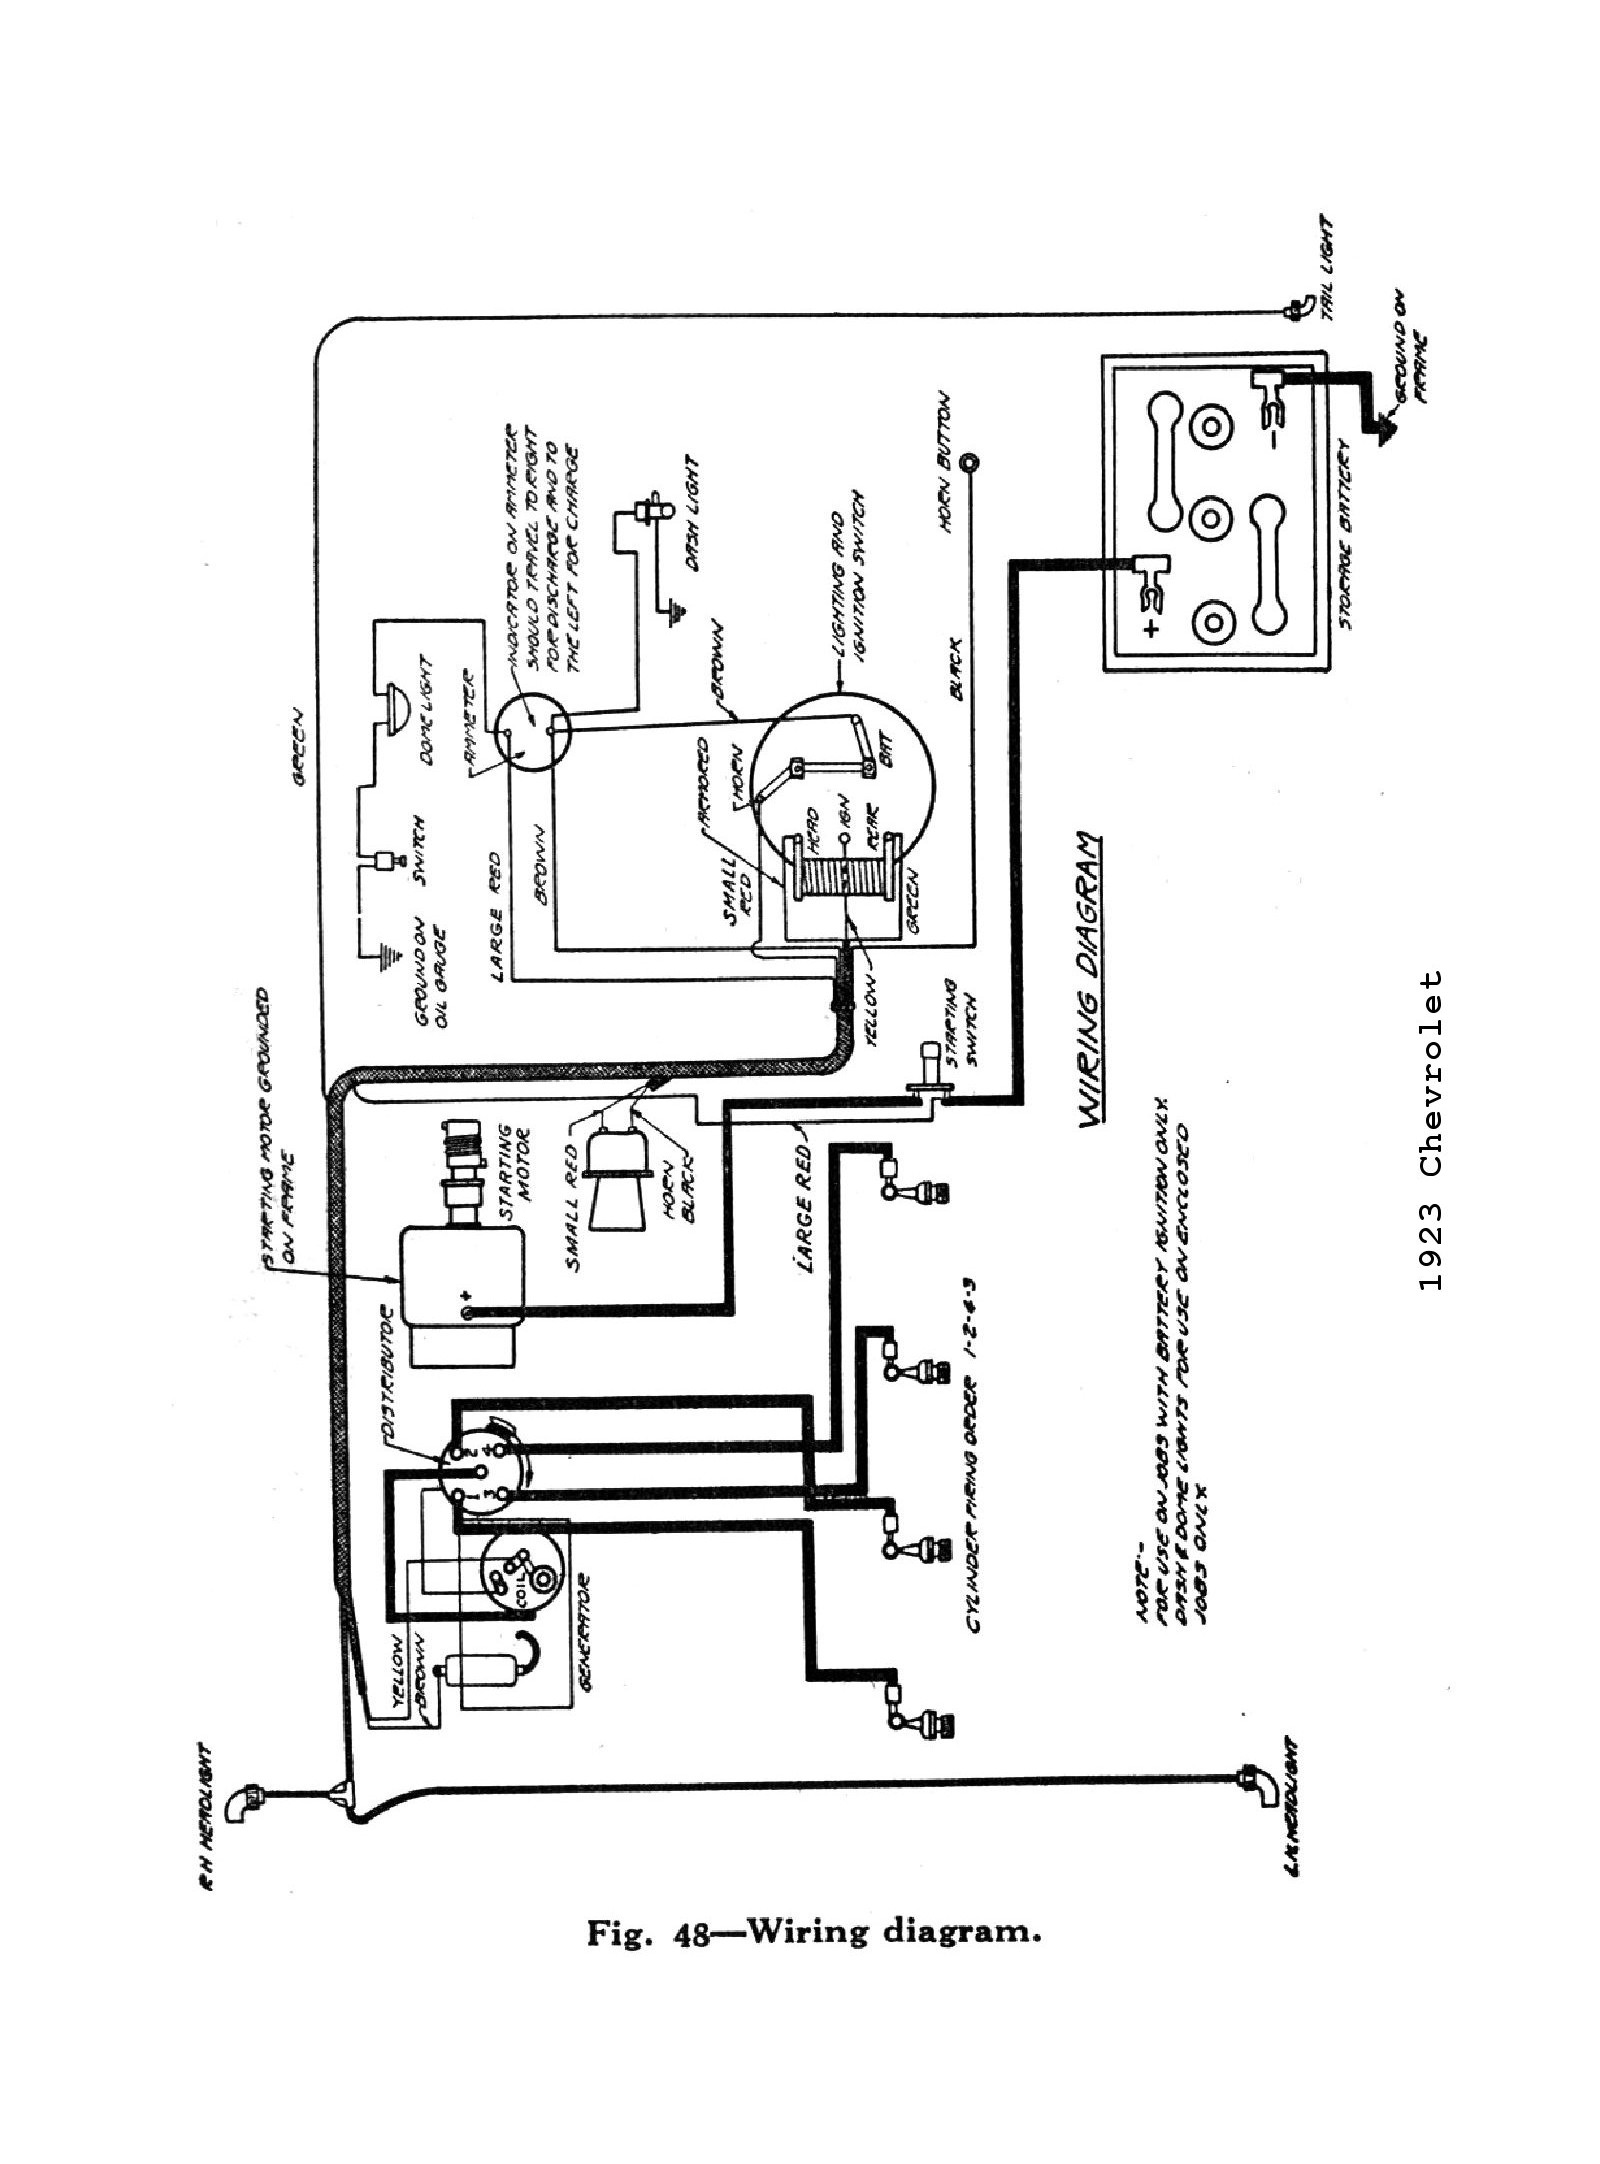 72 Charger Wiring Diagram Another Blog About 1958 Dodge Detailed Schematics Rh Jppastryarts Com